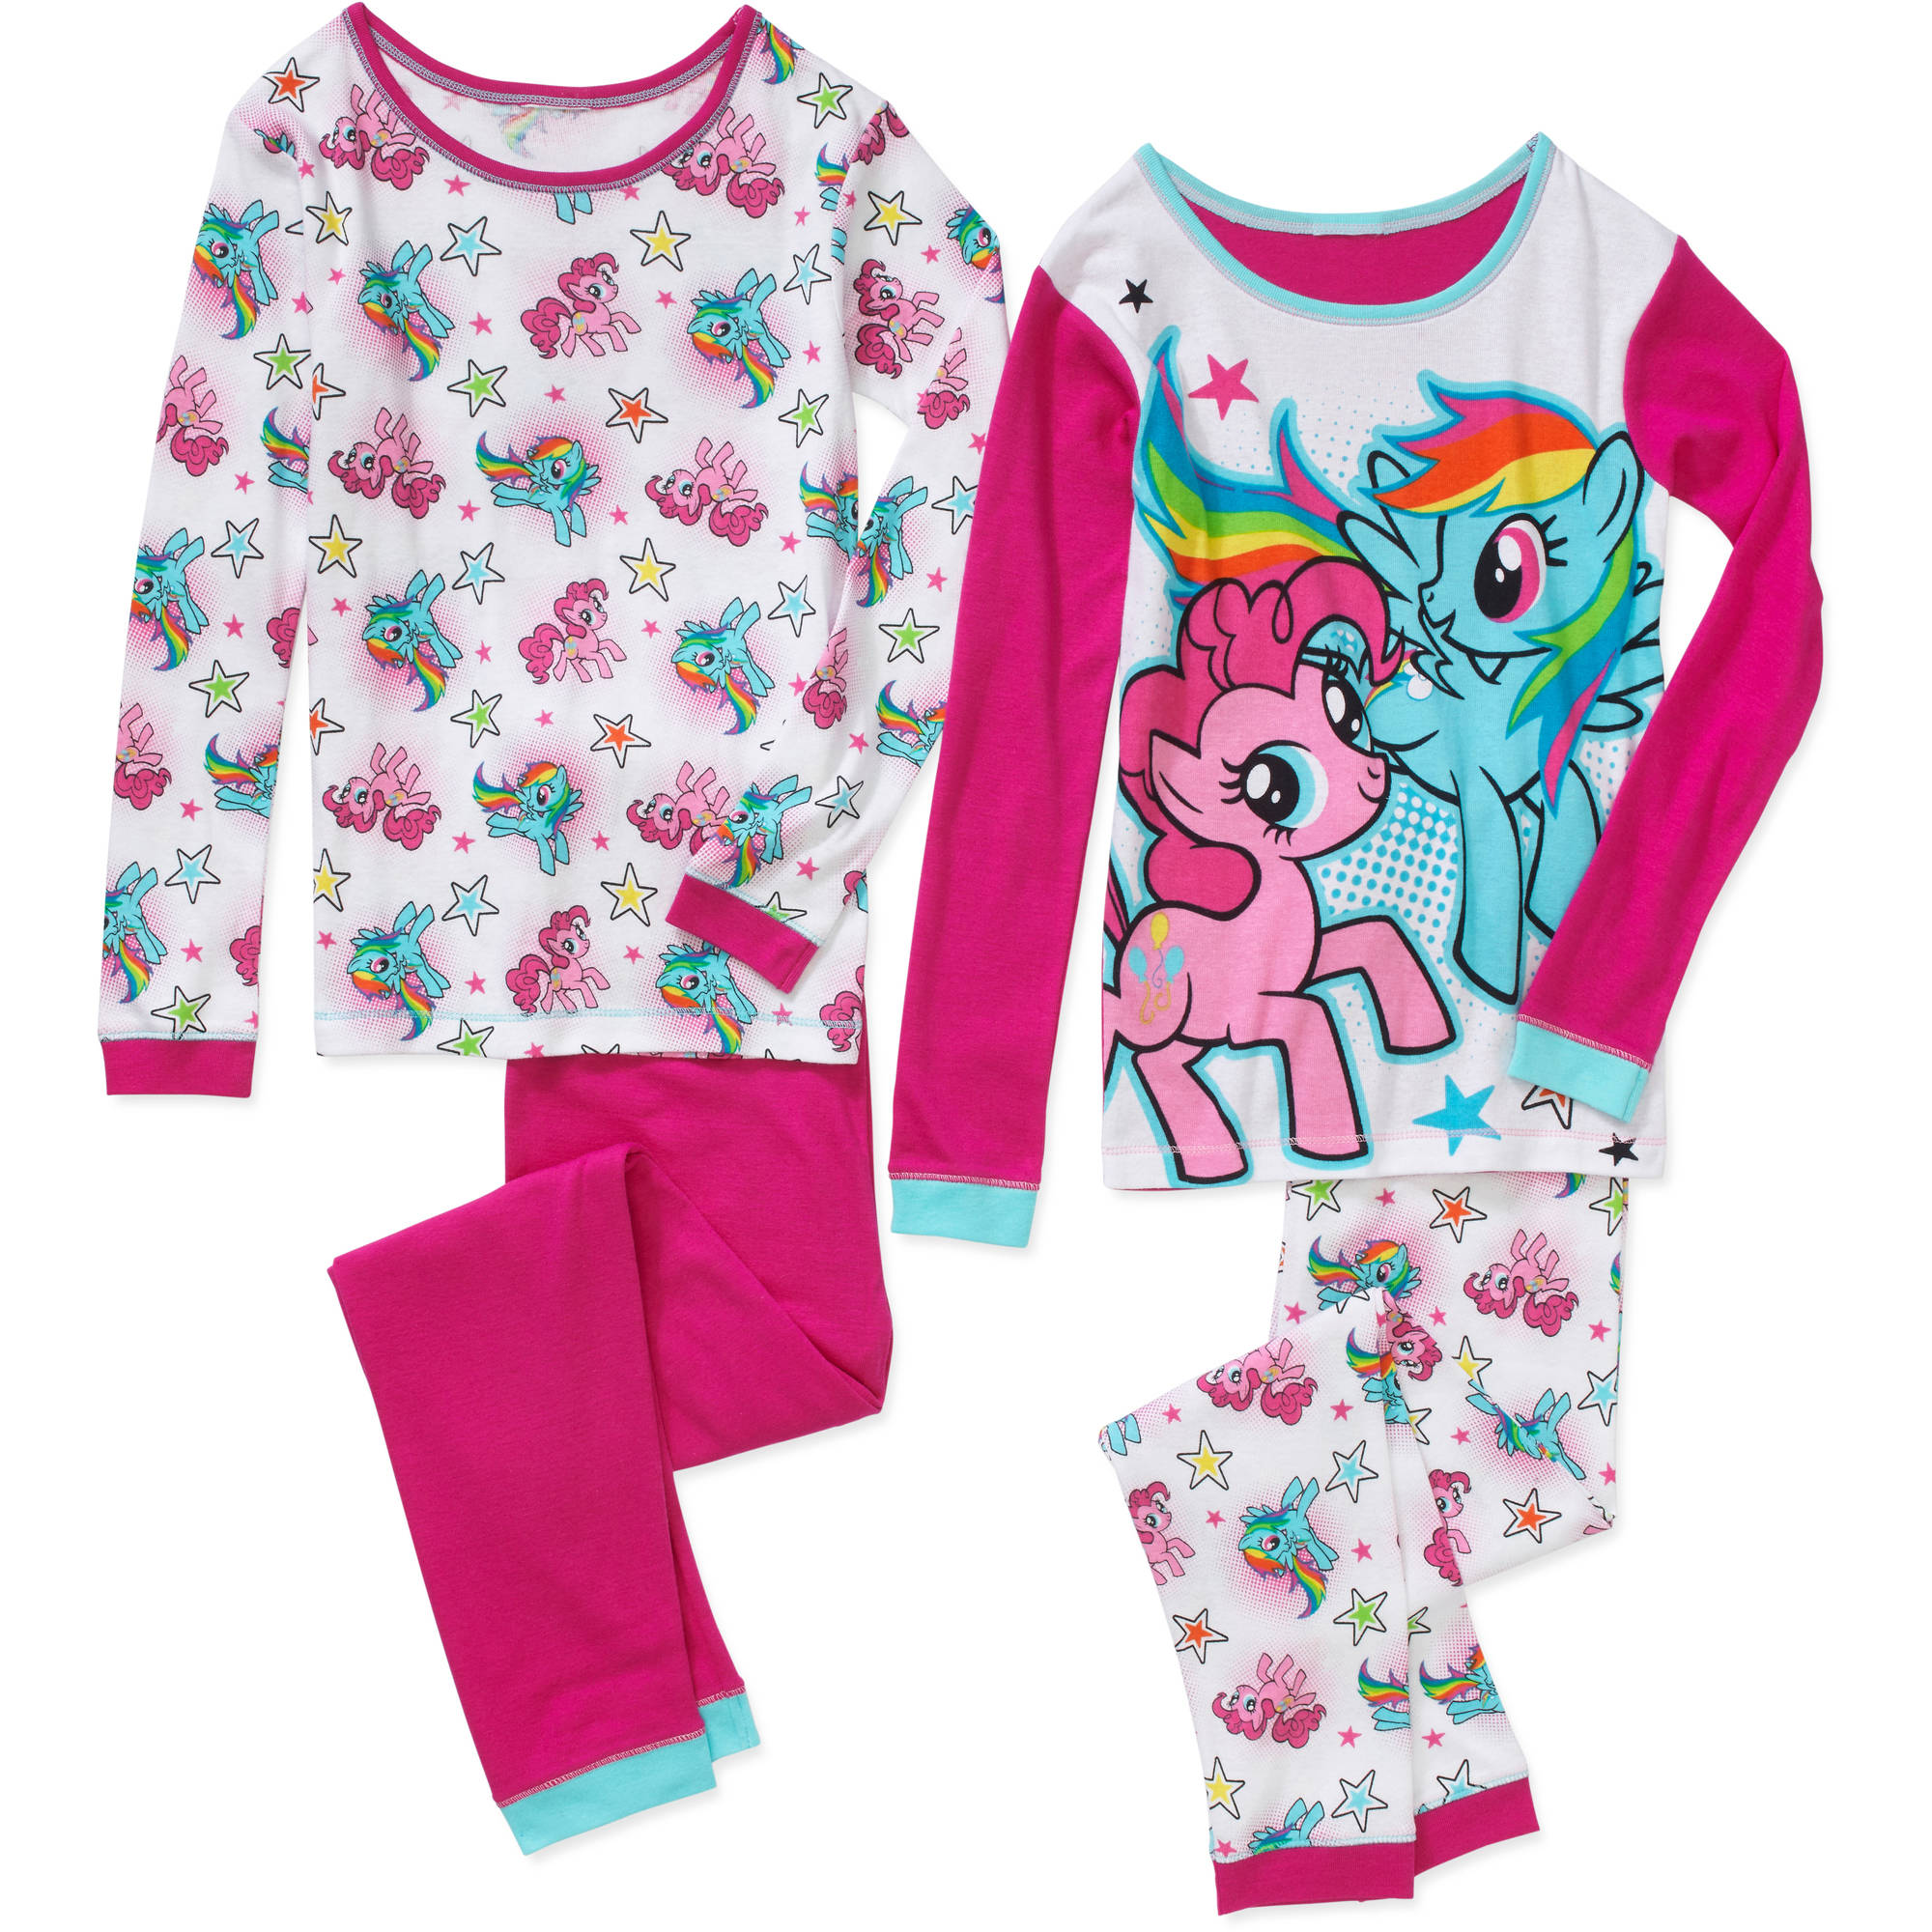 Girls' Licensed 4-Piece Cotton Pj